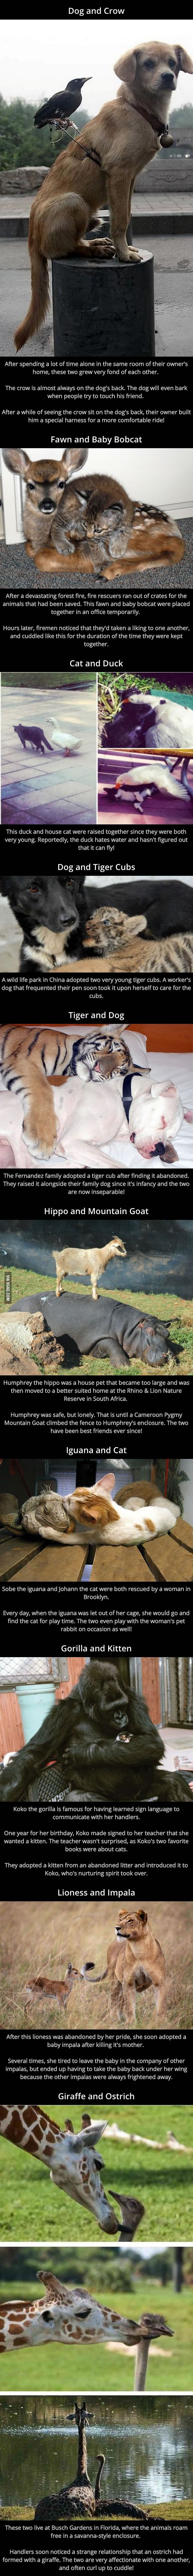 Unusual Animal Friendships - www.viralpx.com